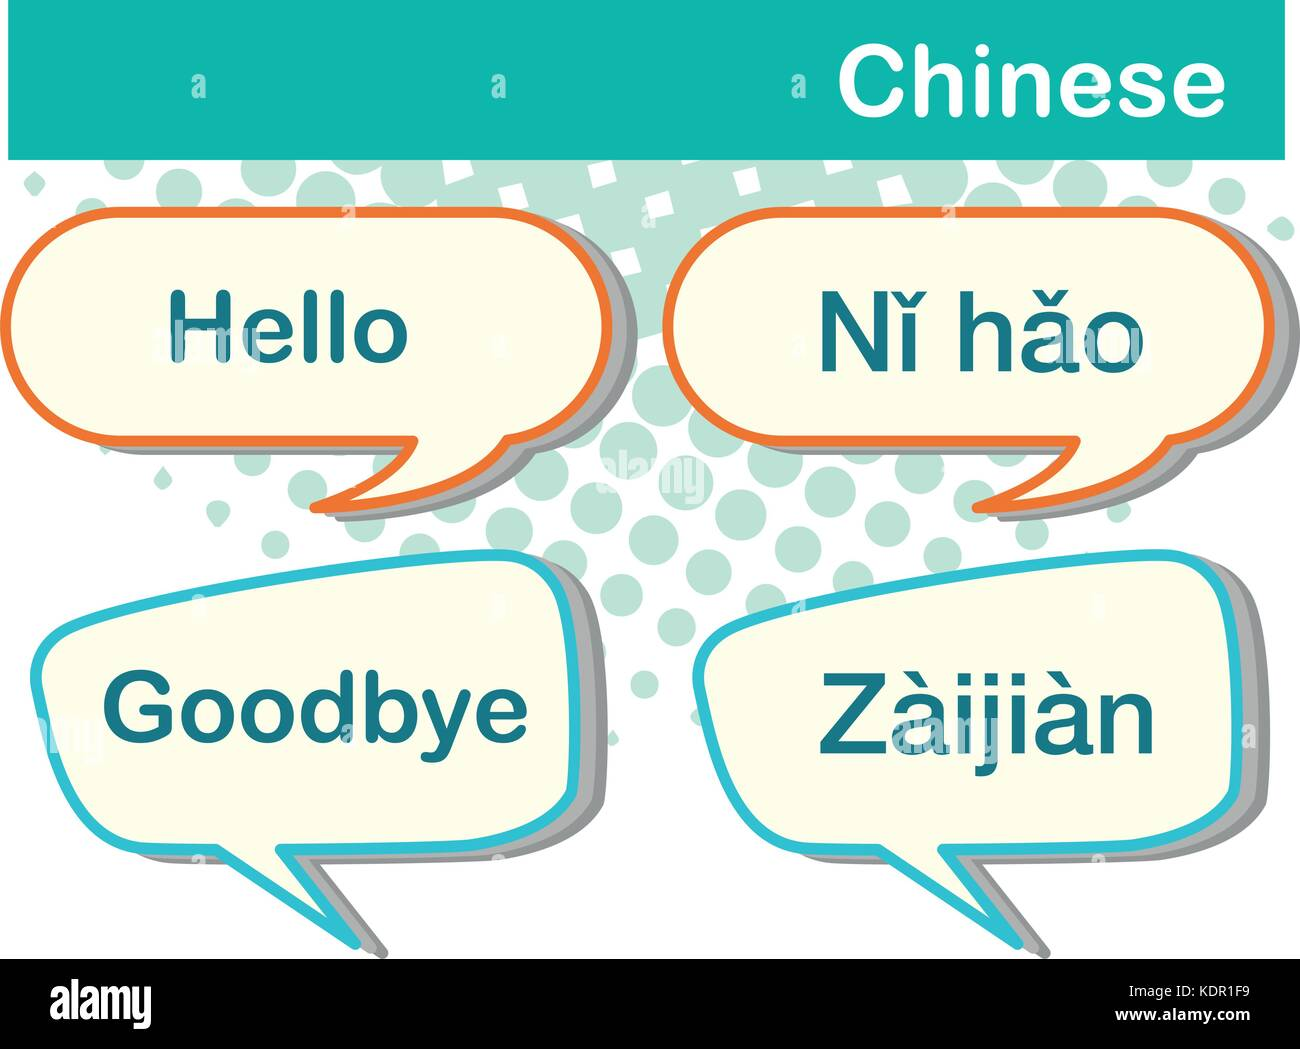 Chinese language stock vector images alamy greeting words in chinese language illustration stock vector m4hsunfo